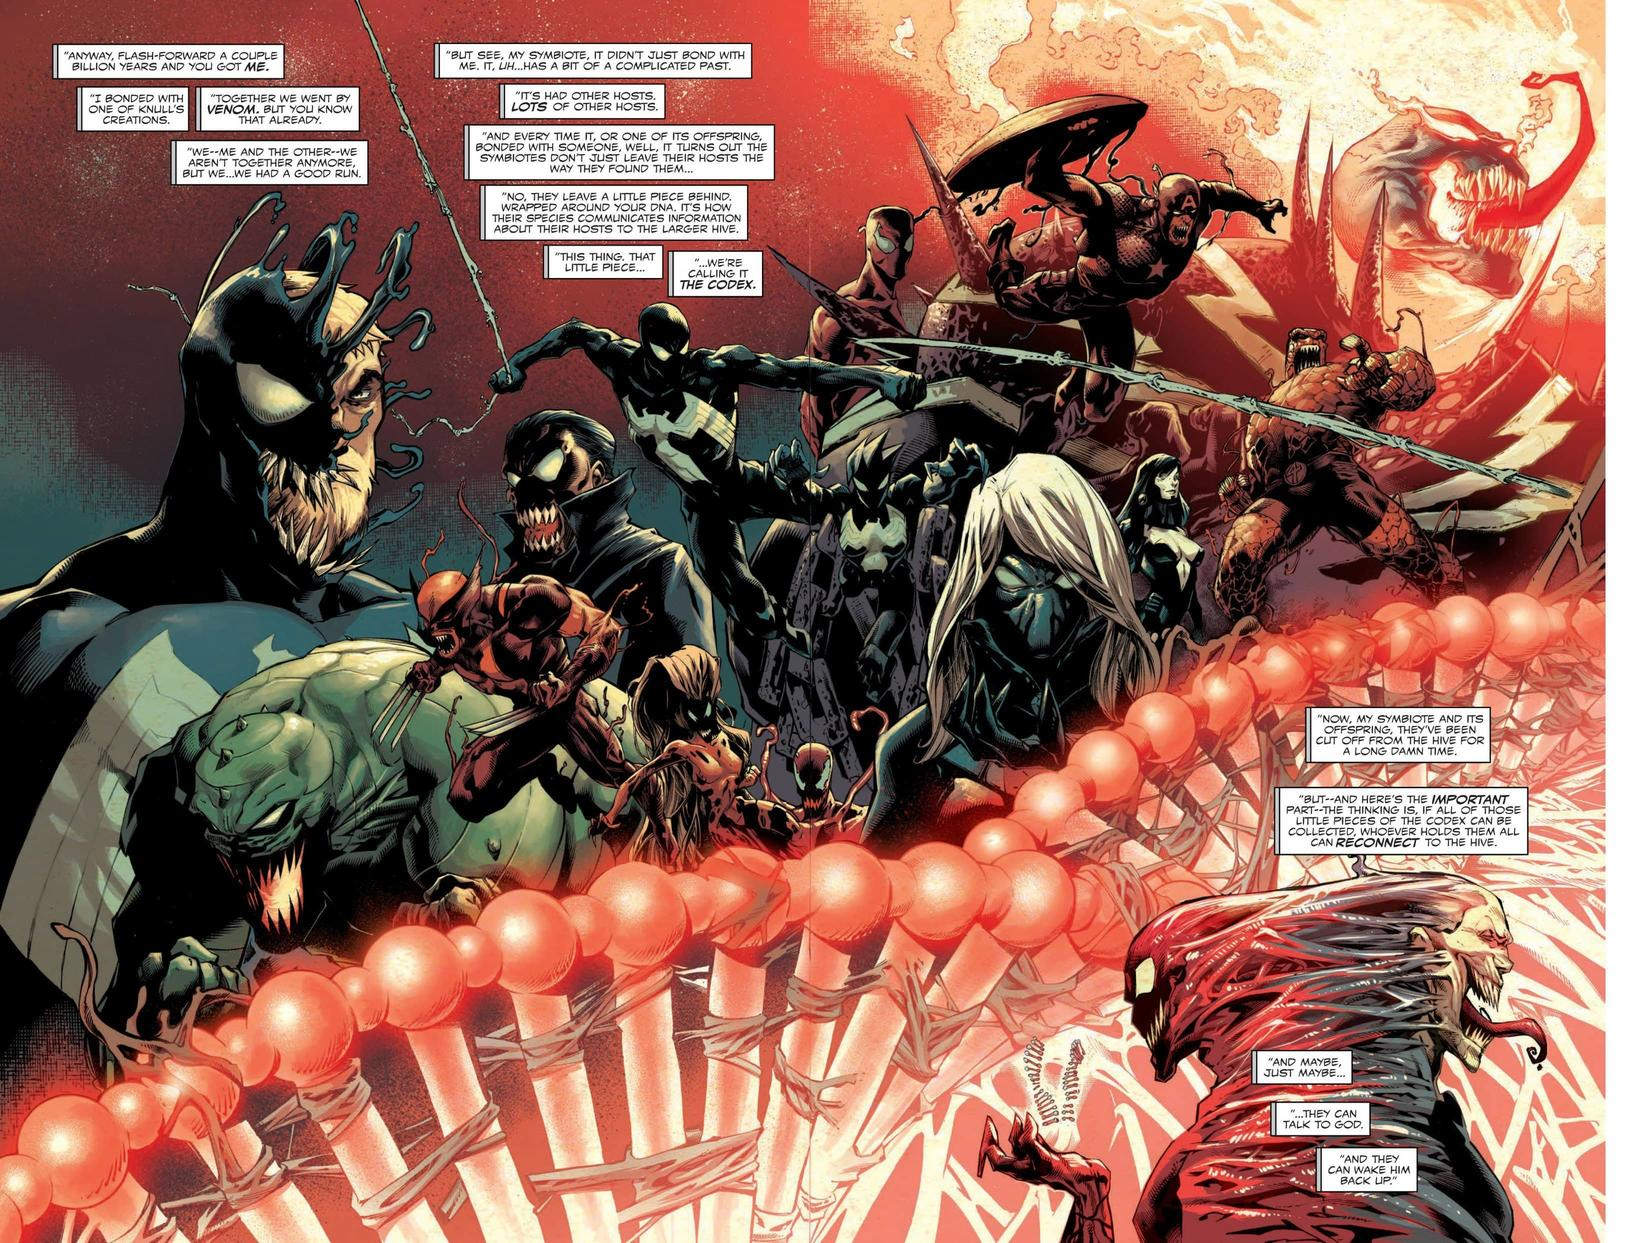 ABSOLUTE CARNAGE #1 interior pencils by Ryan Stegman